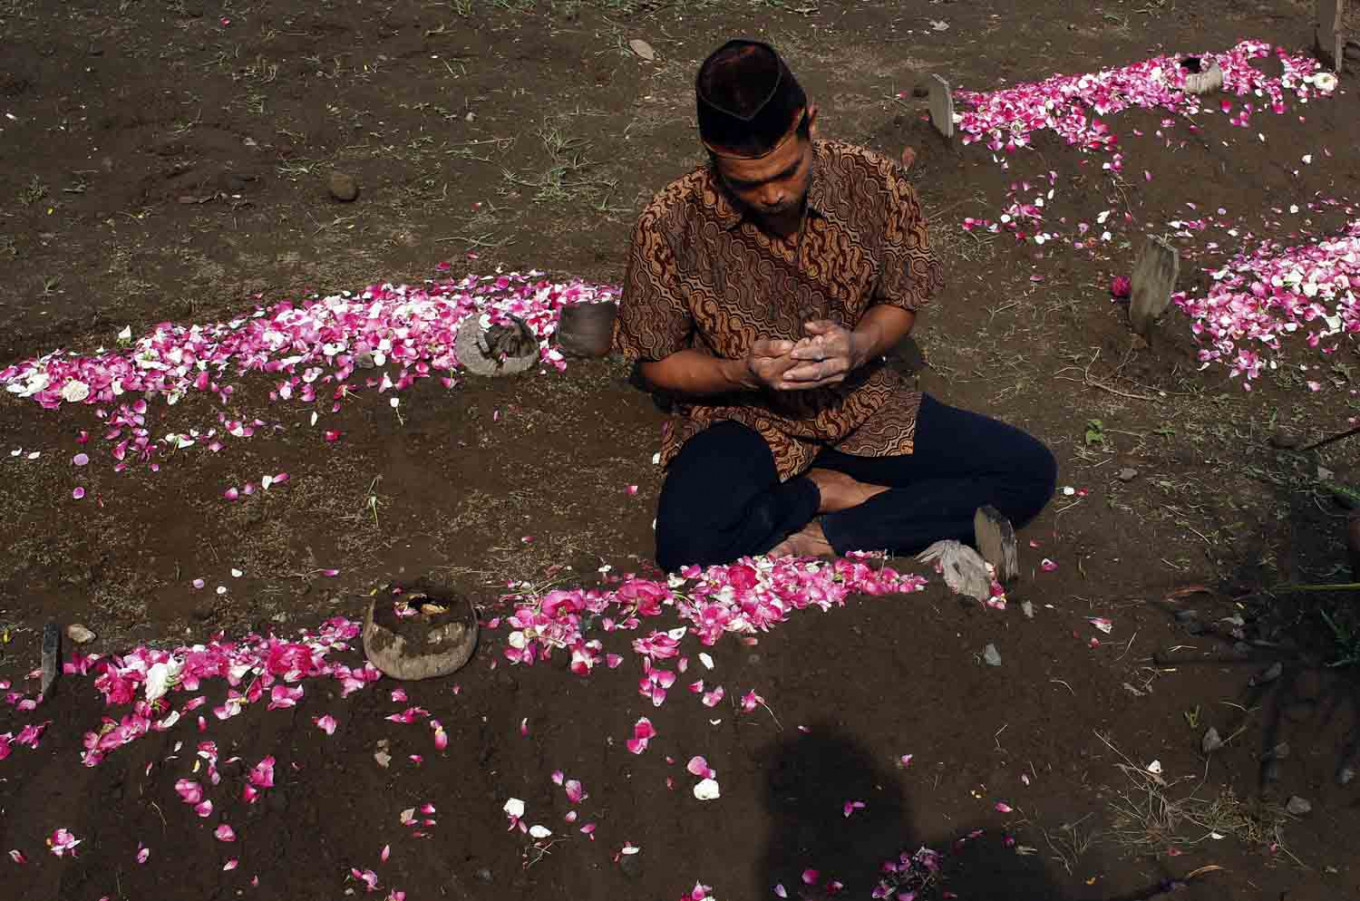 A man prays at a grave during the nyadran ritual in Jogonalan, Klaten, Central Java on April 28. JP/Magnus Hendratmo